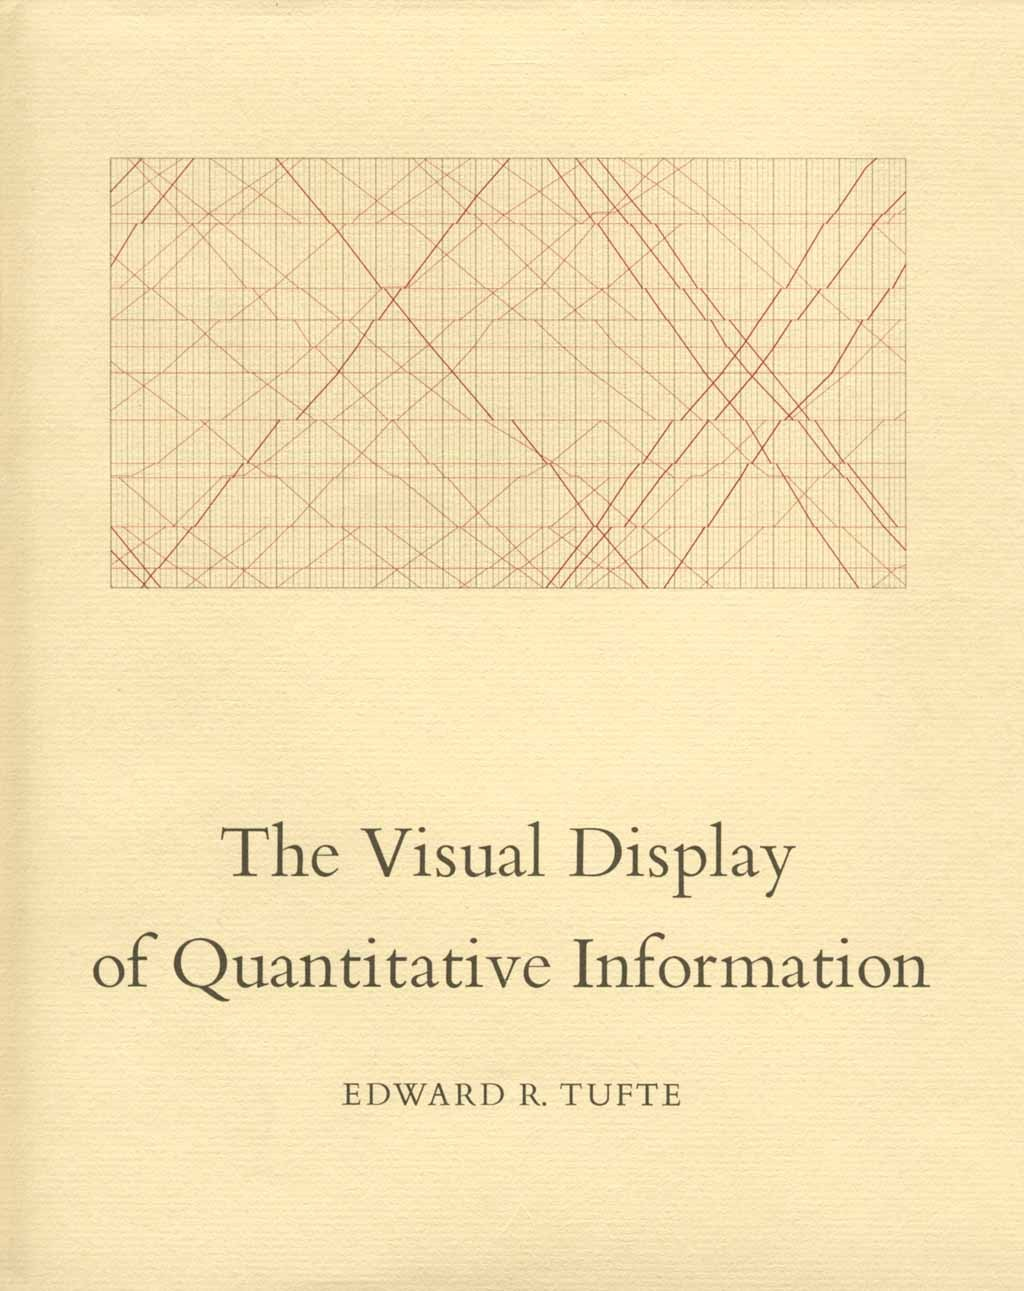 an image of the cover of The Visual Display of Quantitative Information by Edward Tufte